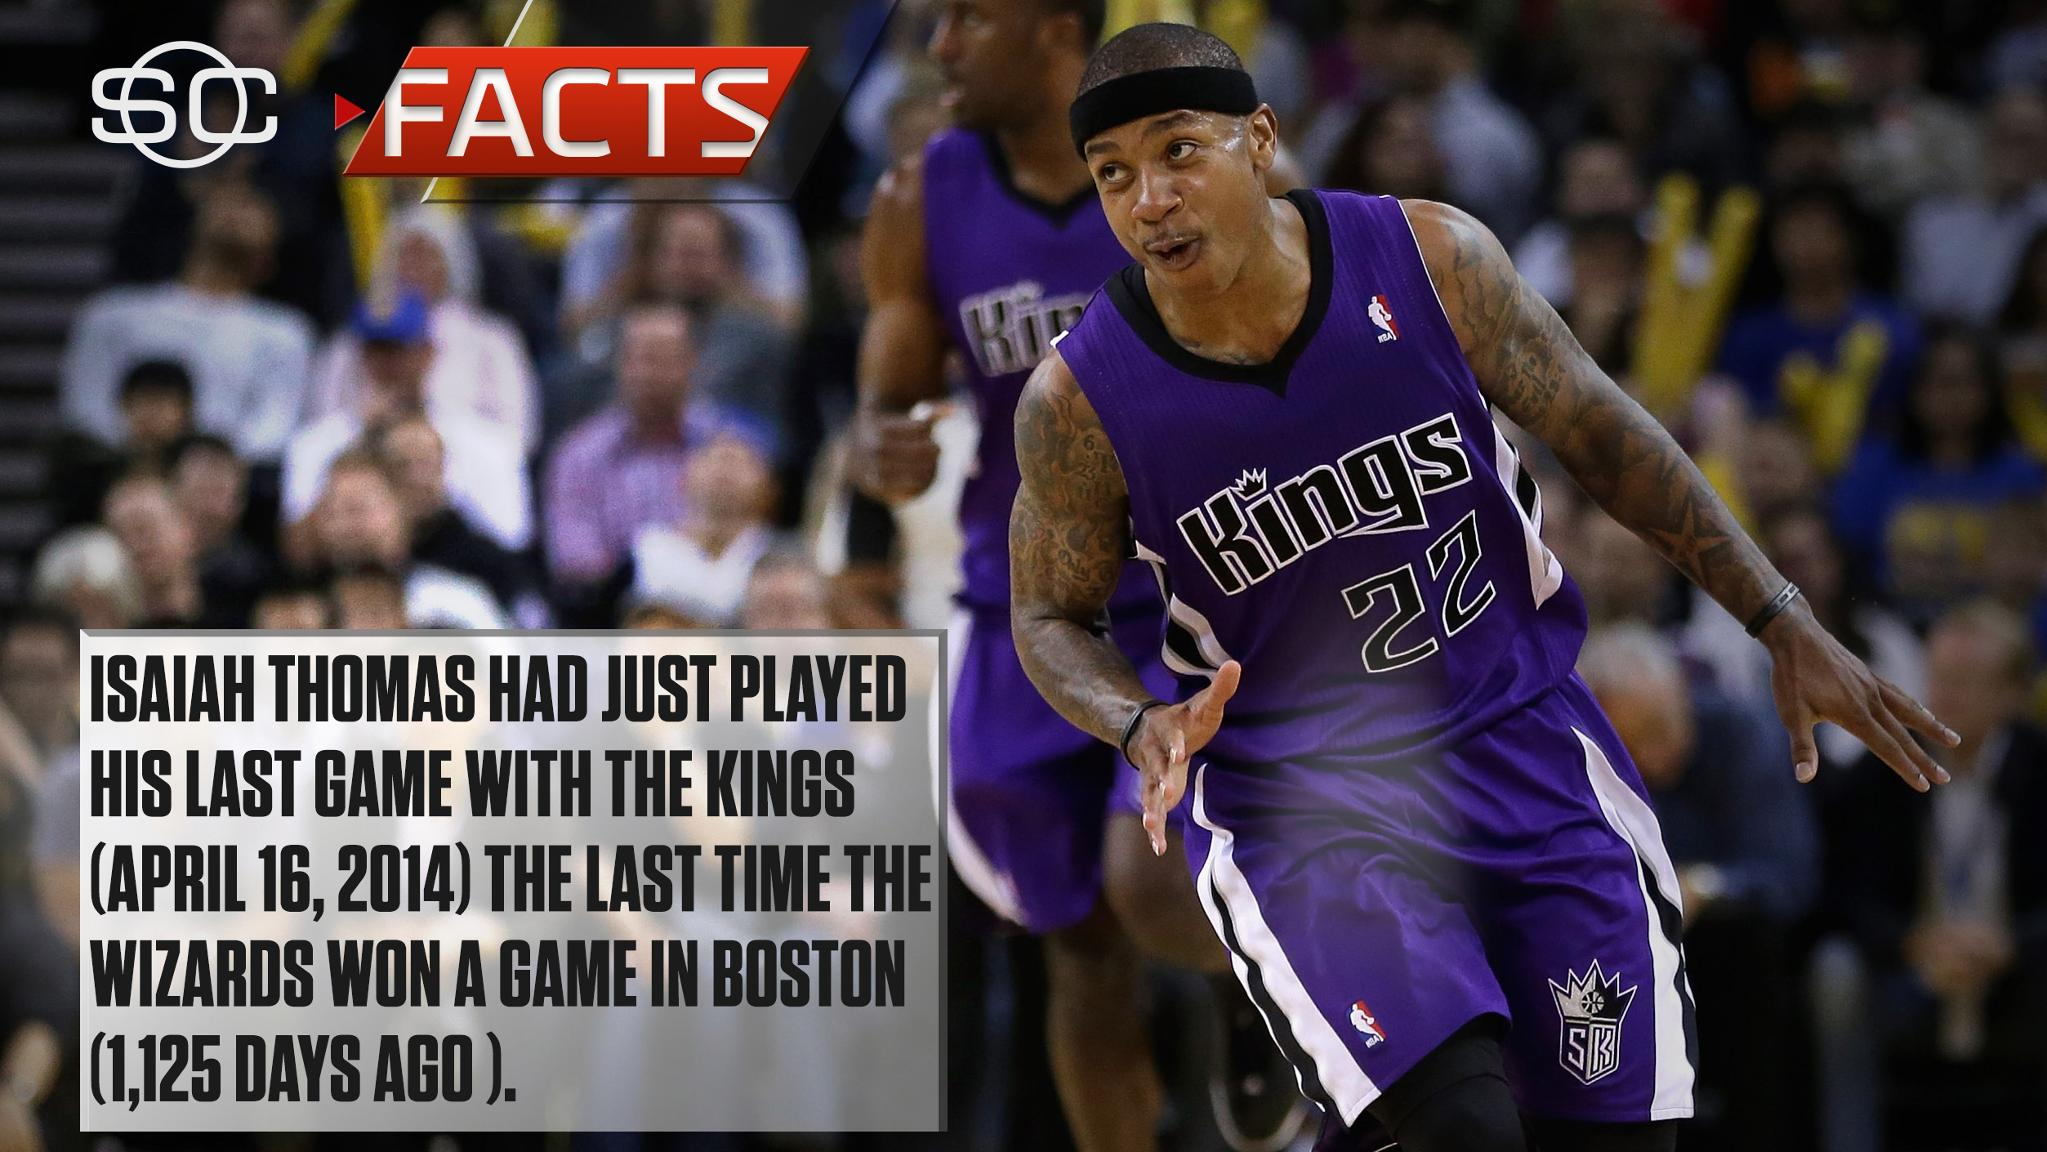 IT4 wasn't even a Celtic the last time Washington won a game in Boston. #SCFacts https://t.co/Fbi704vr3c